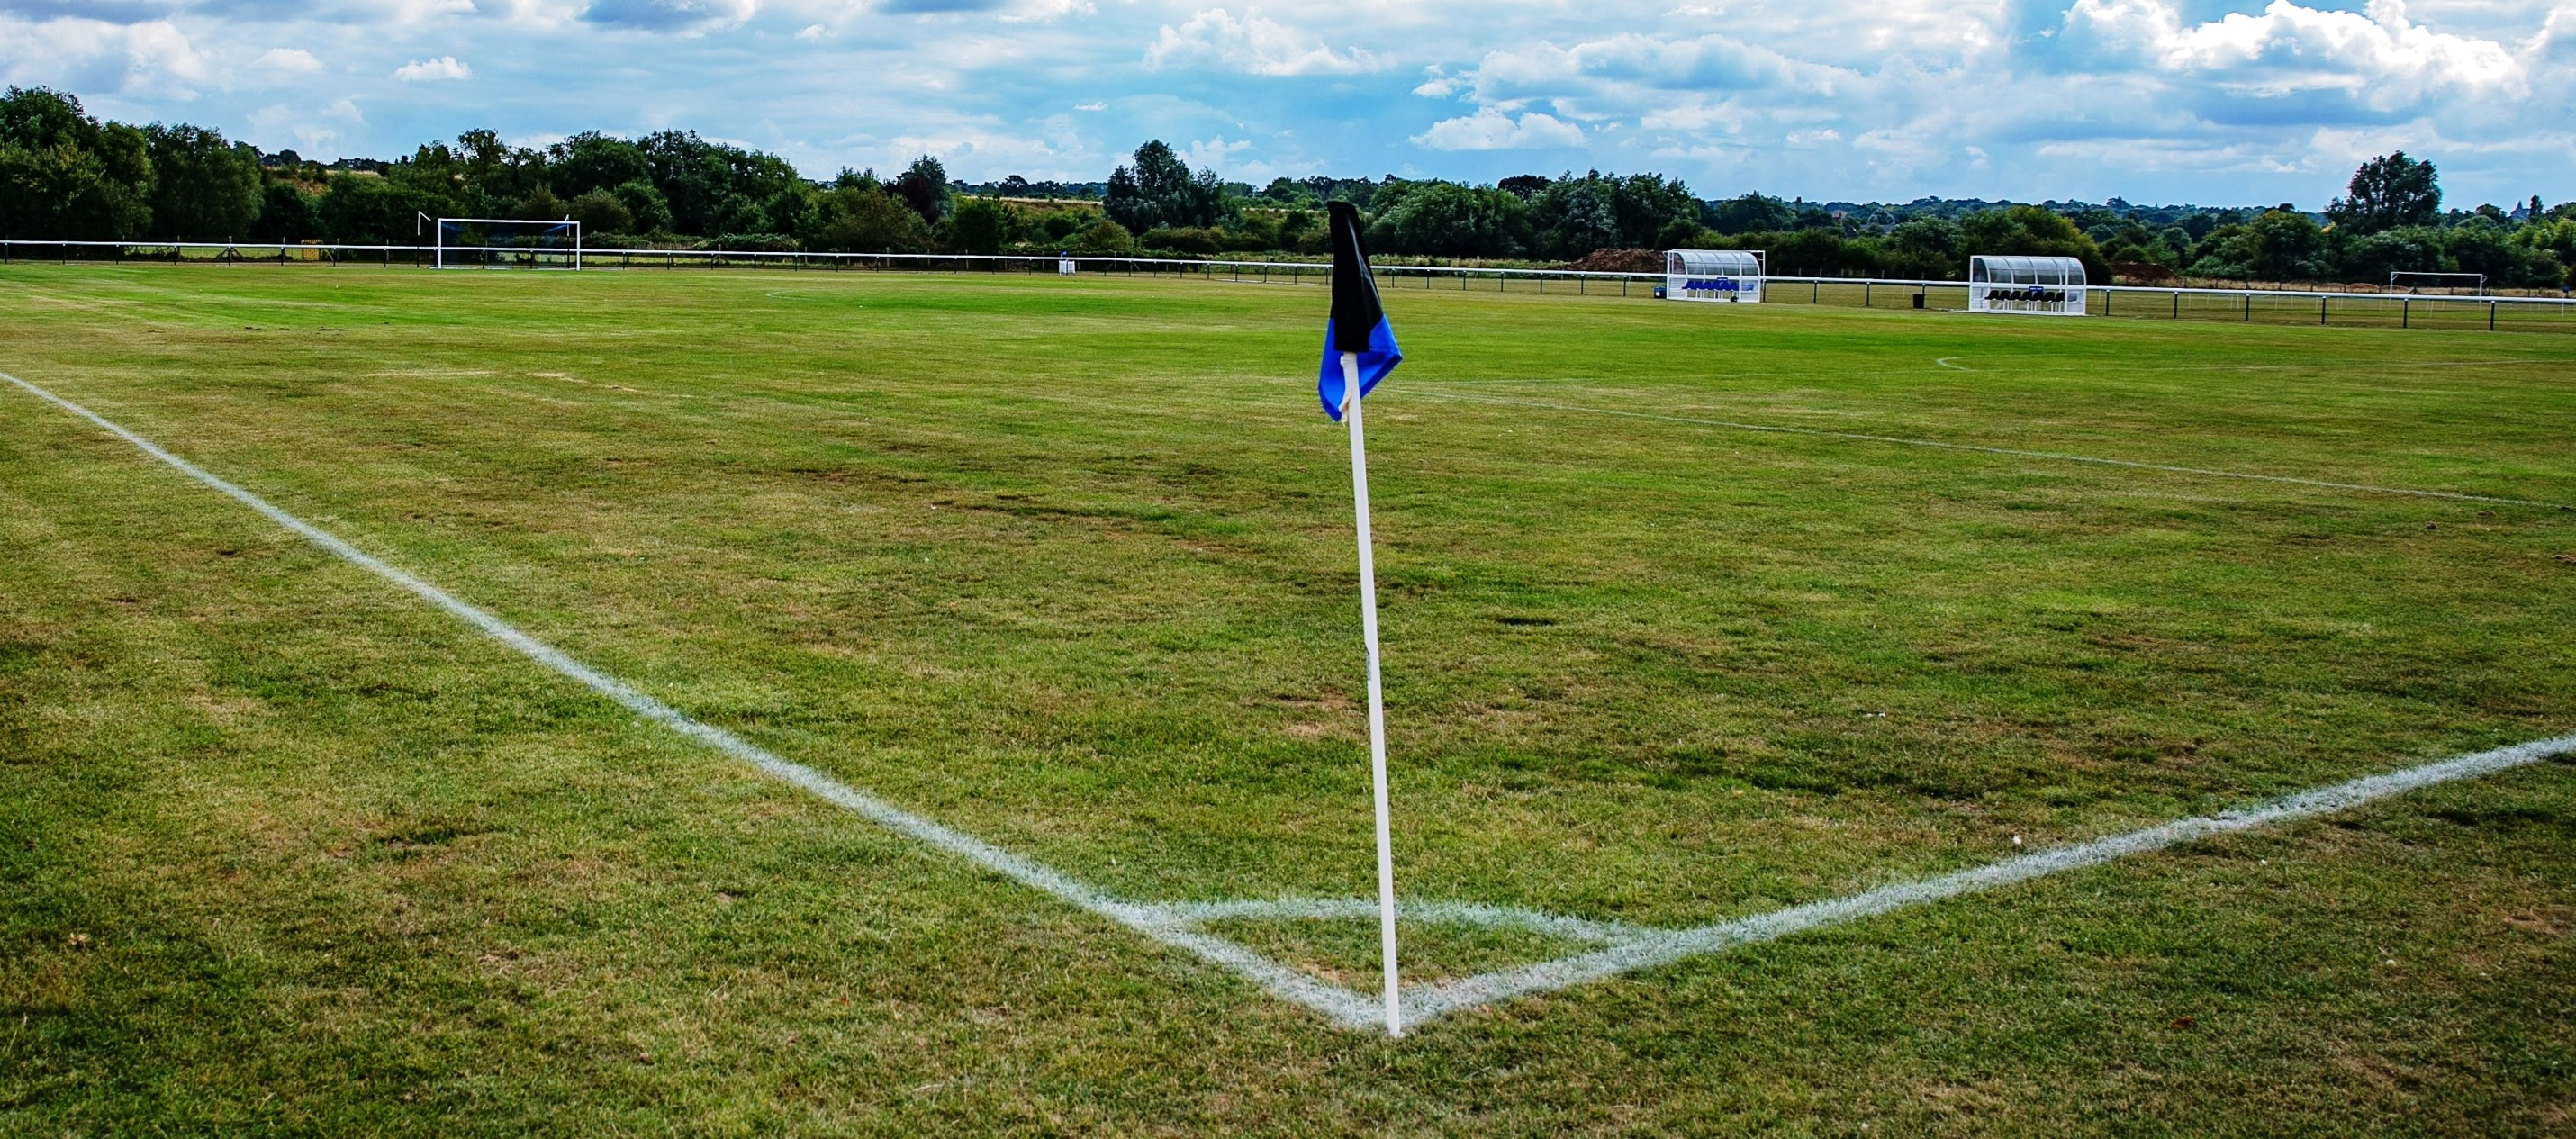 Buckhurst Hill Ground Improvements